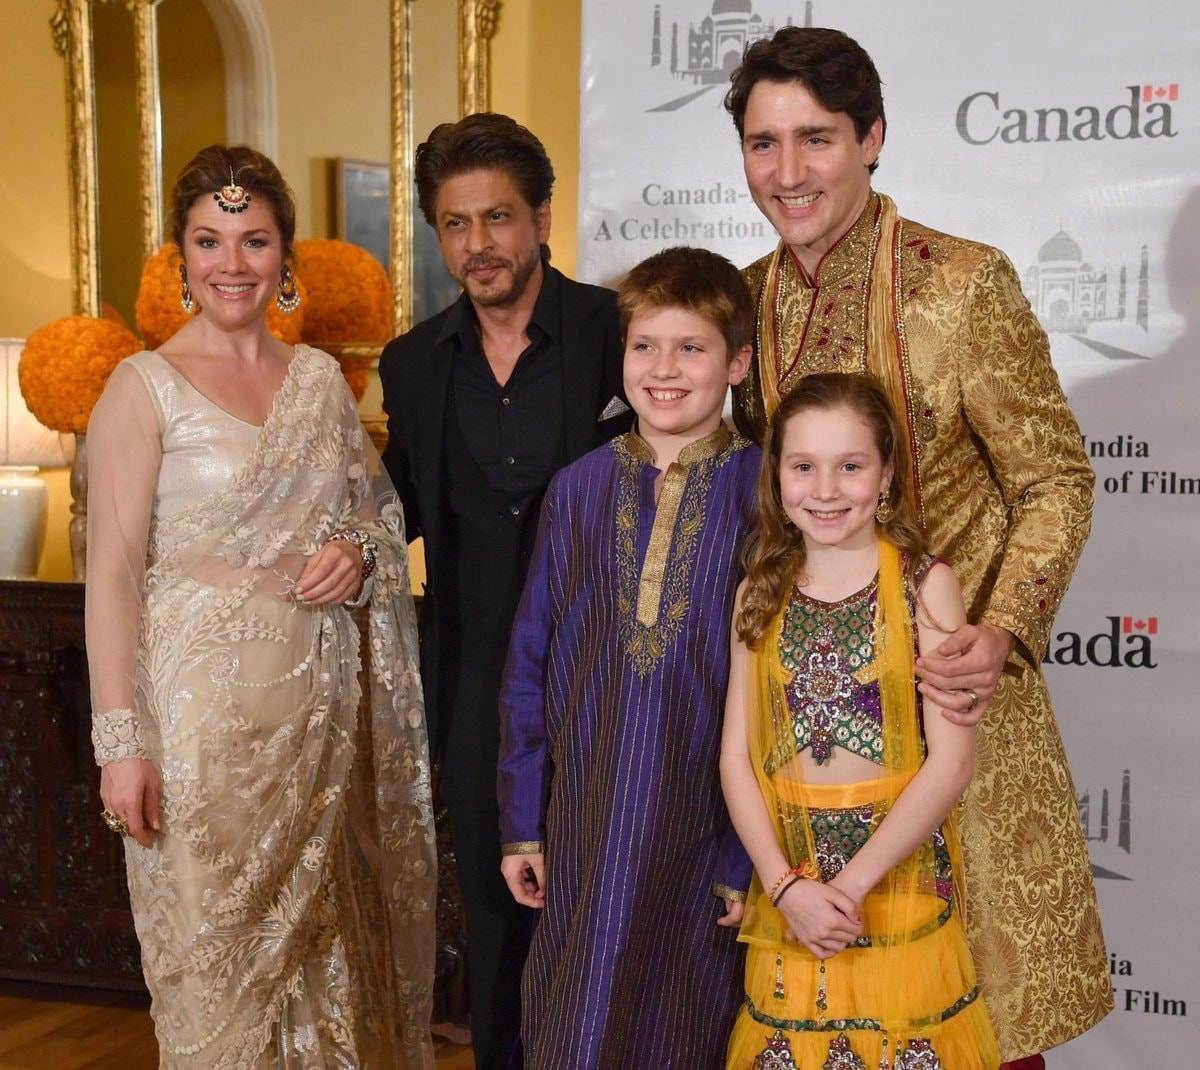 Justin trudeau parties with bolly celebs during his india trip the canadian prime minister met with many bolly celebs and businessmen at a meet and greet in mumbai and we have to say the trudeau family definitely kristyandbryce Choice Image